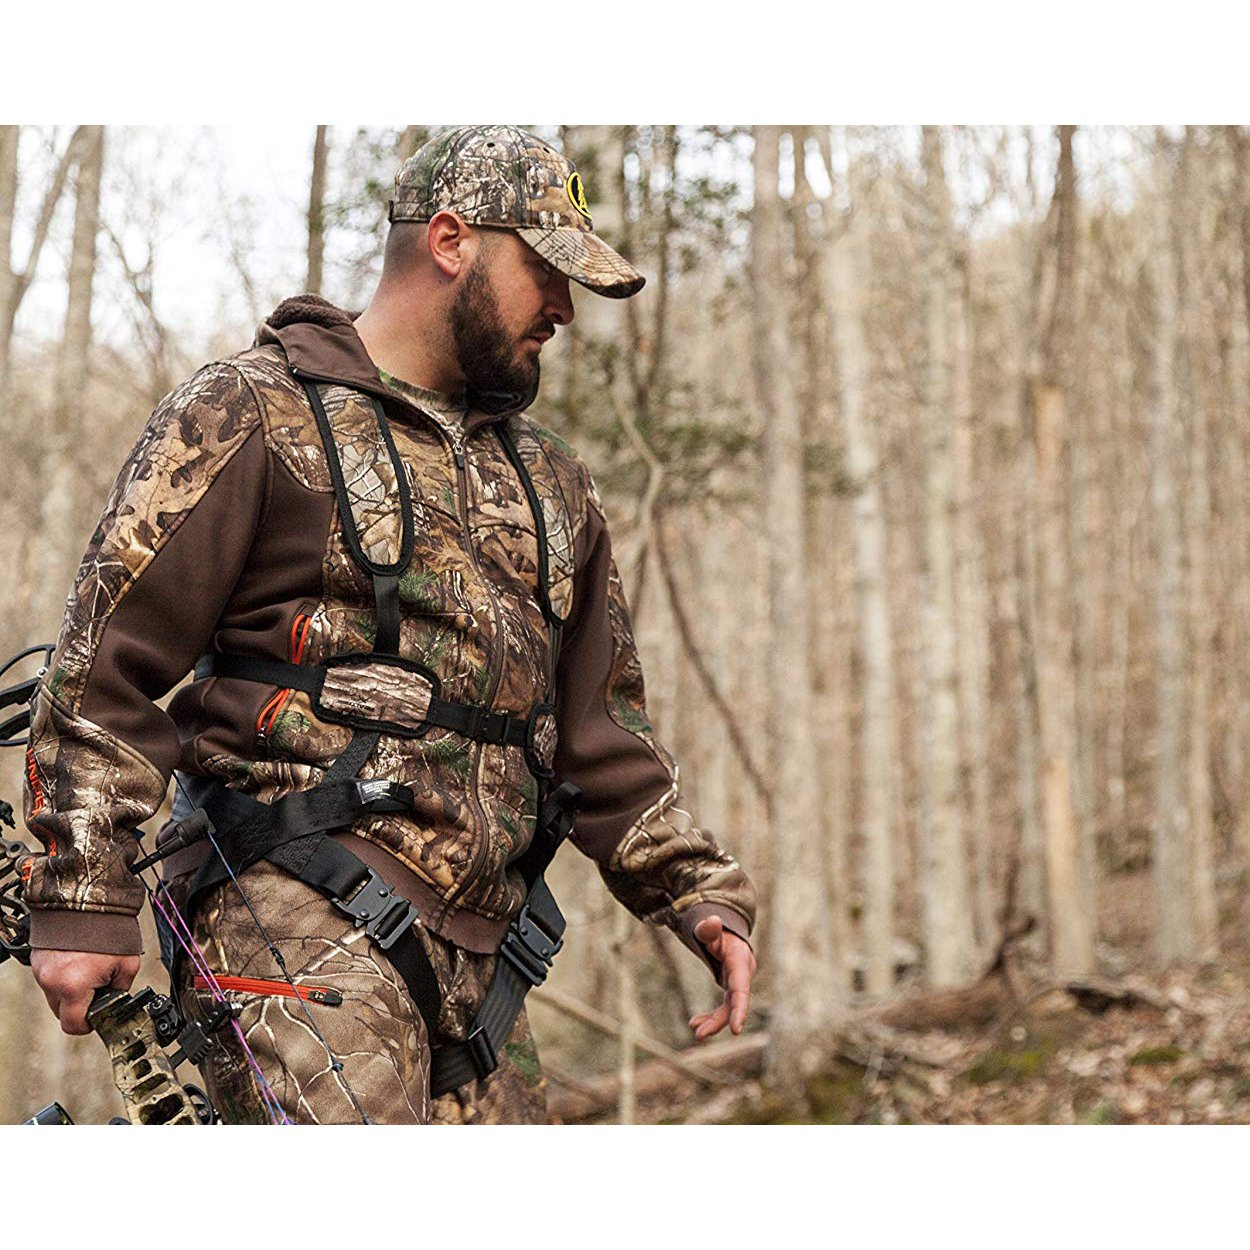 Hunter Safety Systems Camo Hunting X 1 Bowhunter Tree Stand Harness Large Xl